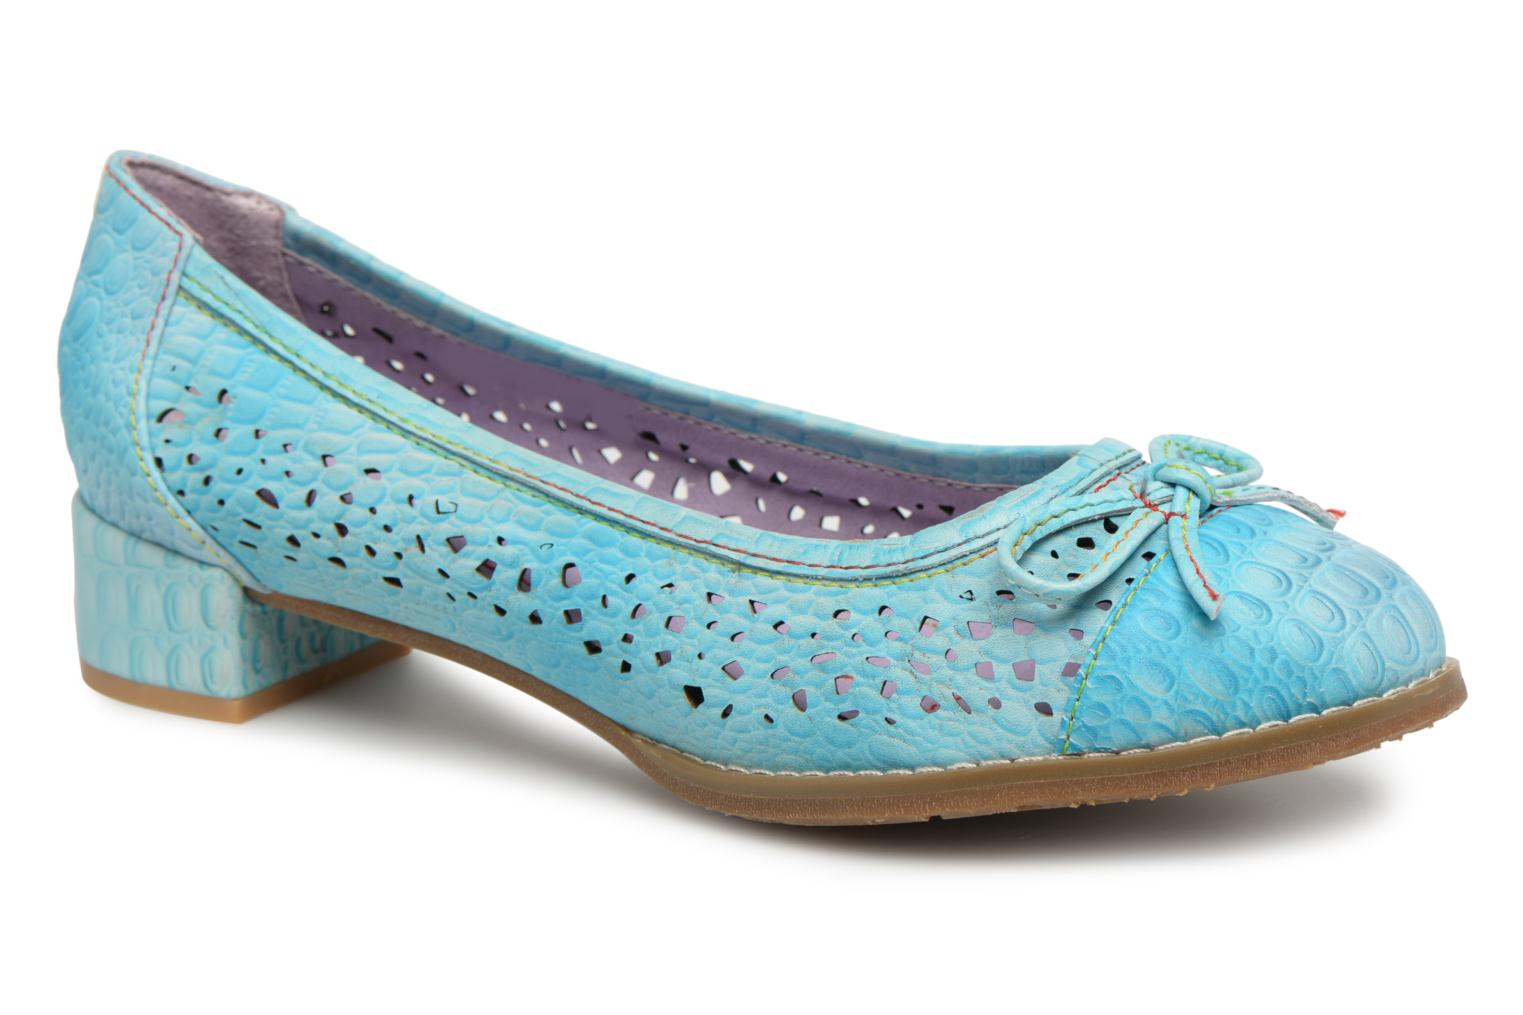 Marques Chaussure femme Laura Vita femme BRITTANY 02 Turquoise